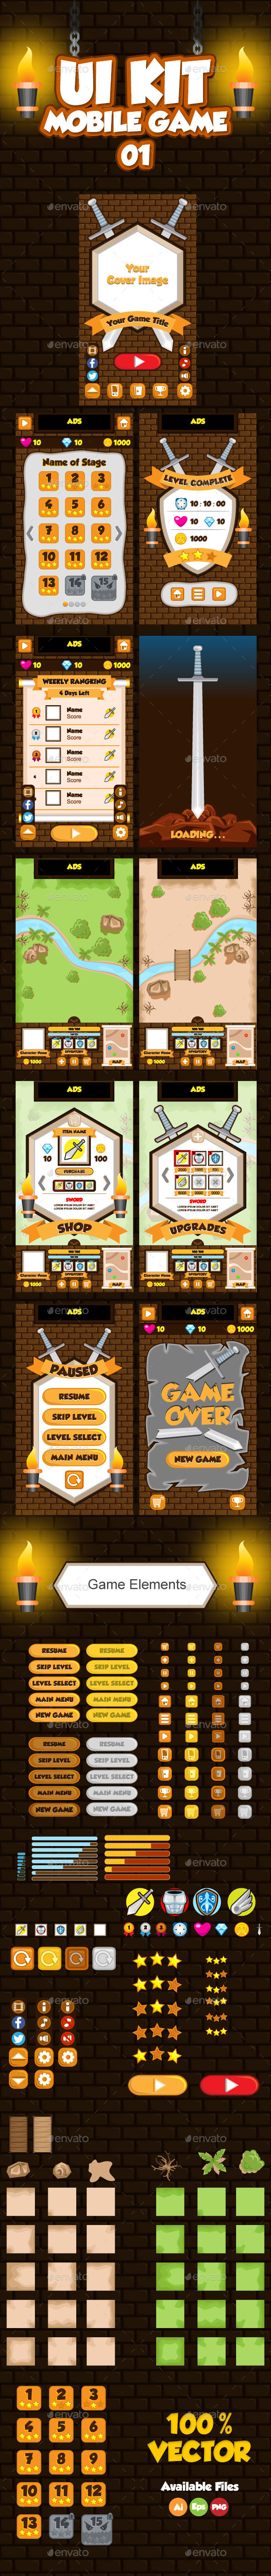 Mobile Game UI Collection 01 - User Interfaces Game Assets